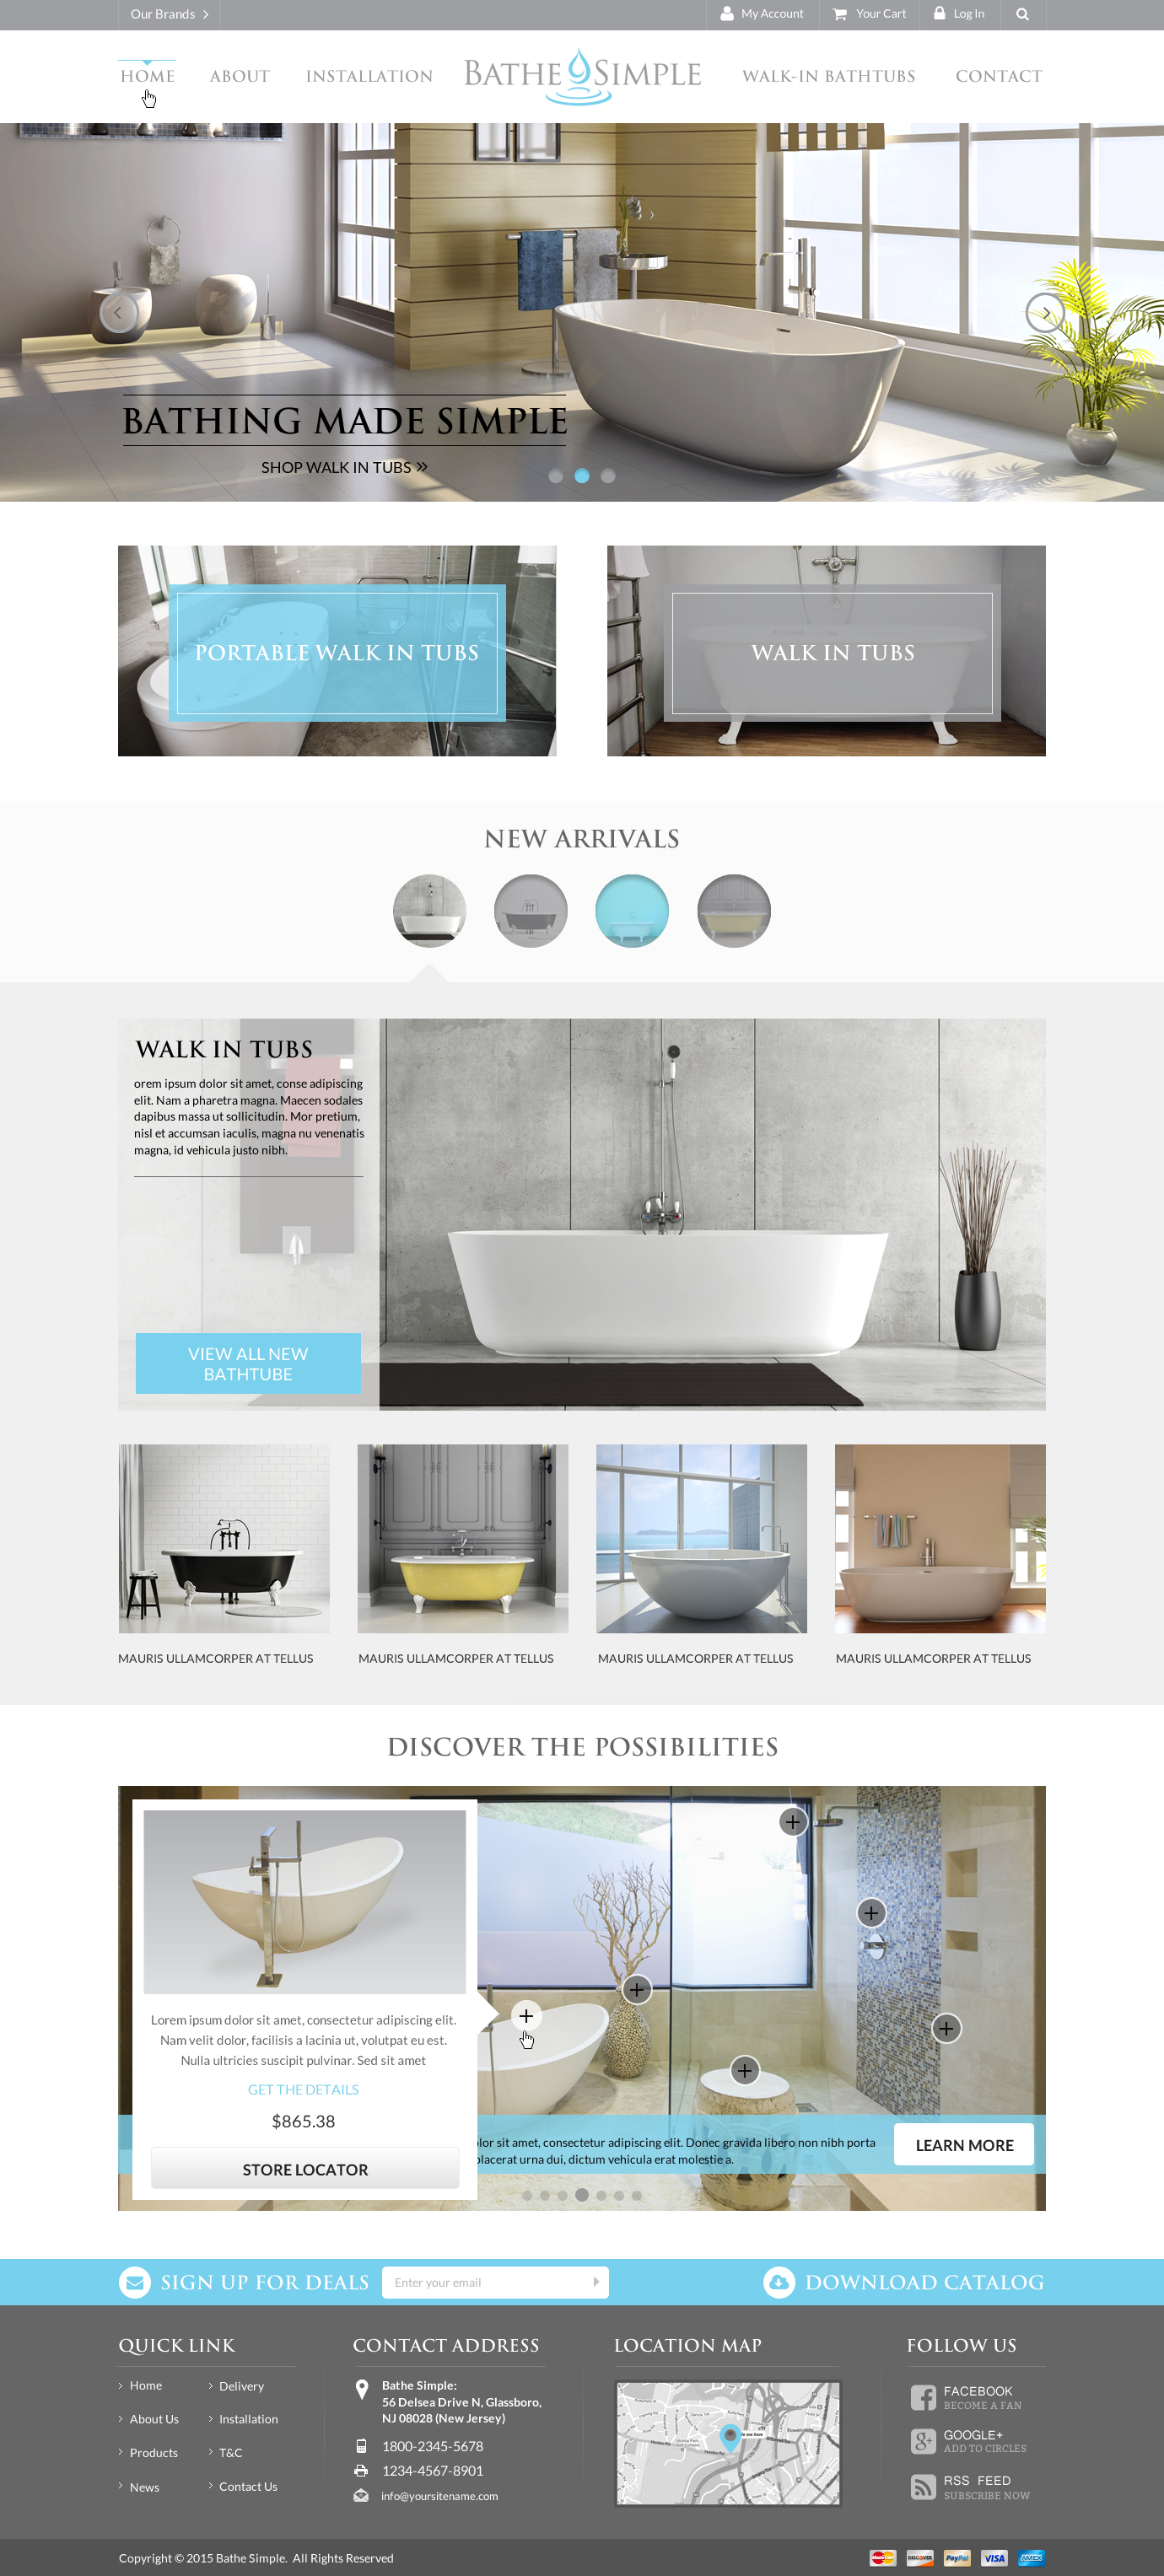 Bathe Simple - Hospitality Industry